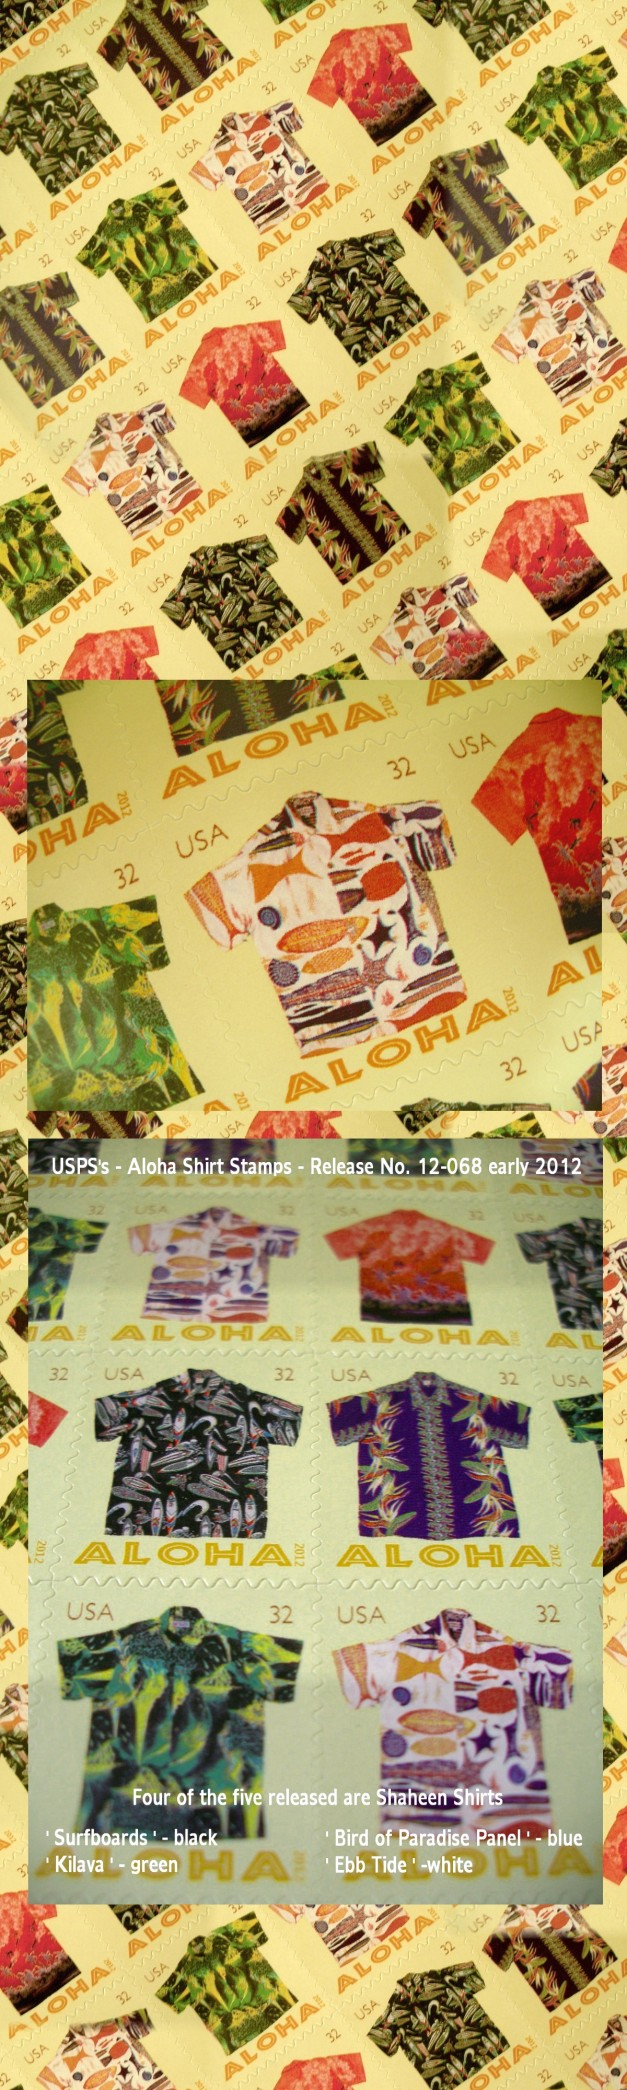 Ashahstamps-5a